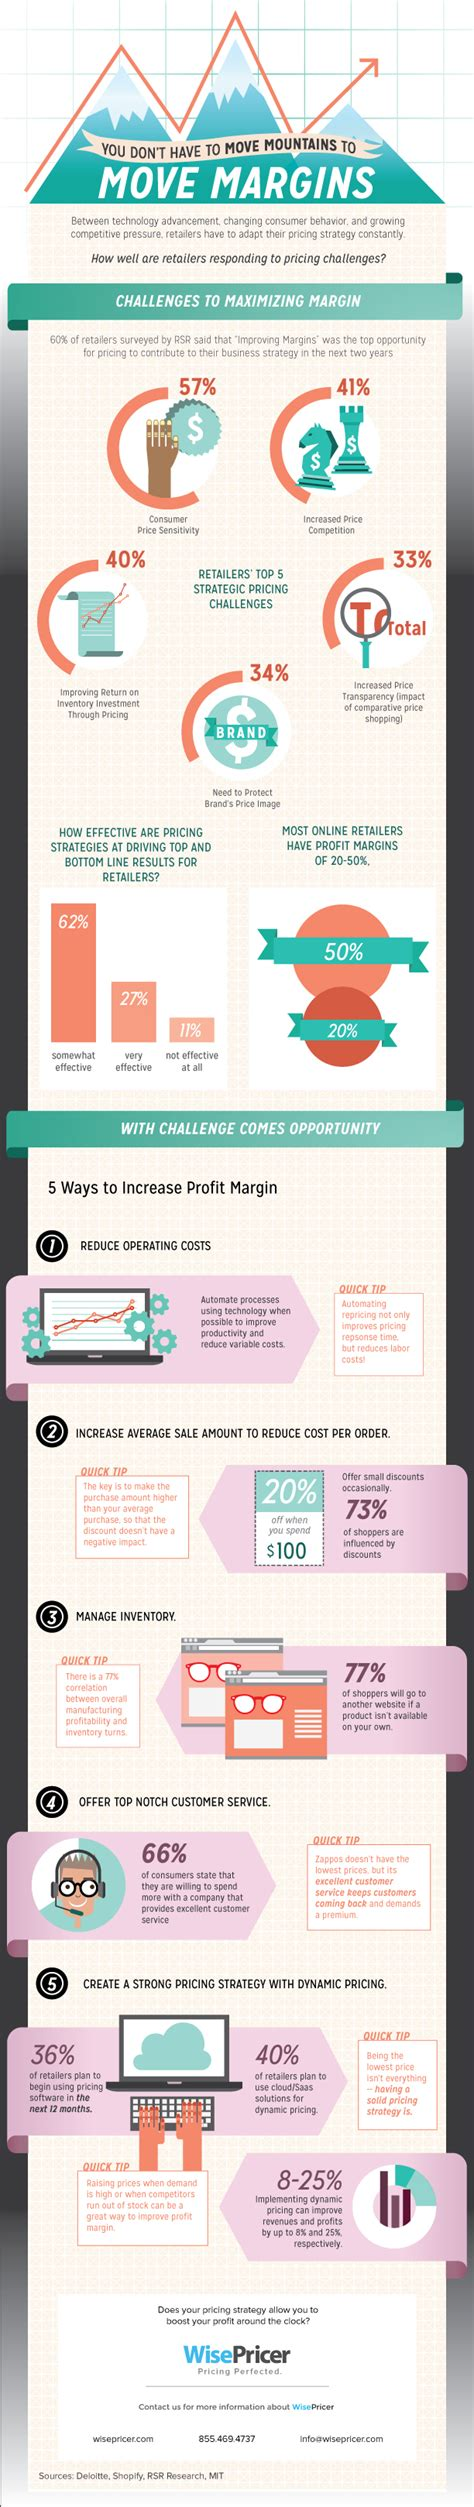 Effective Price Strategy To Increase Your Profit 5 Ways Retailers And Small Business Owners Can Increase